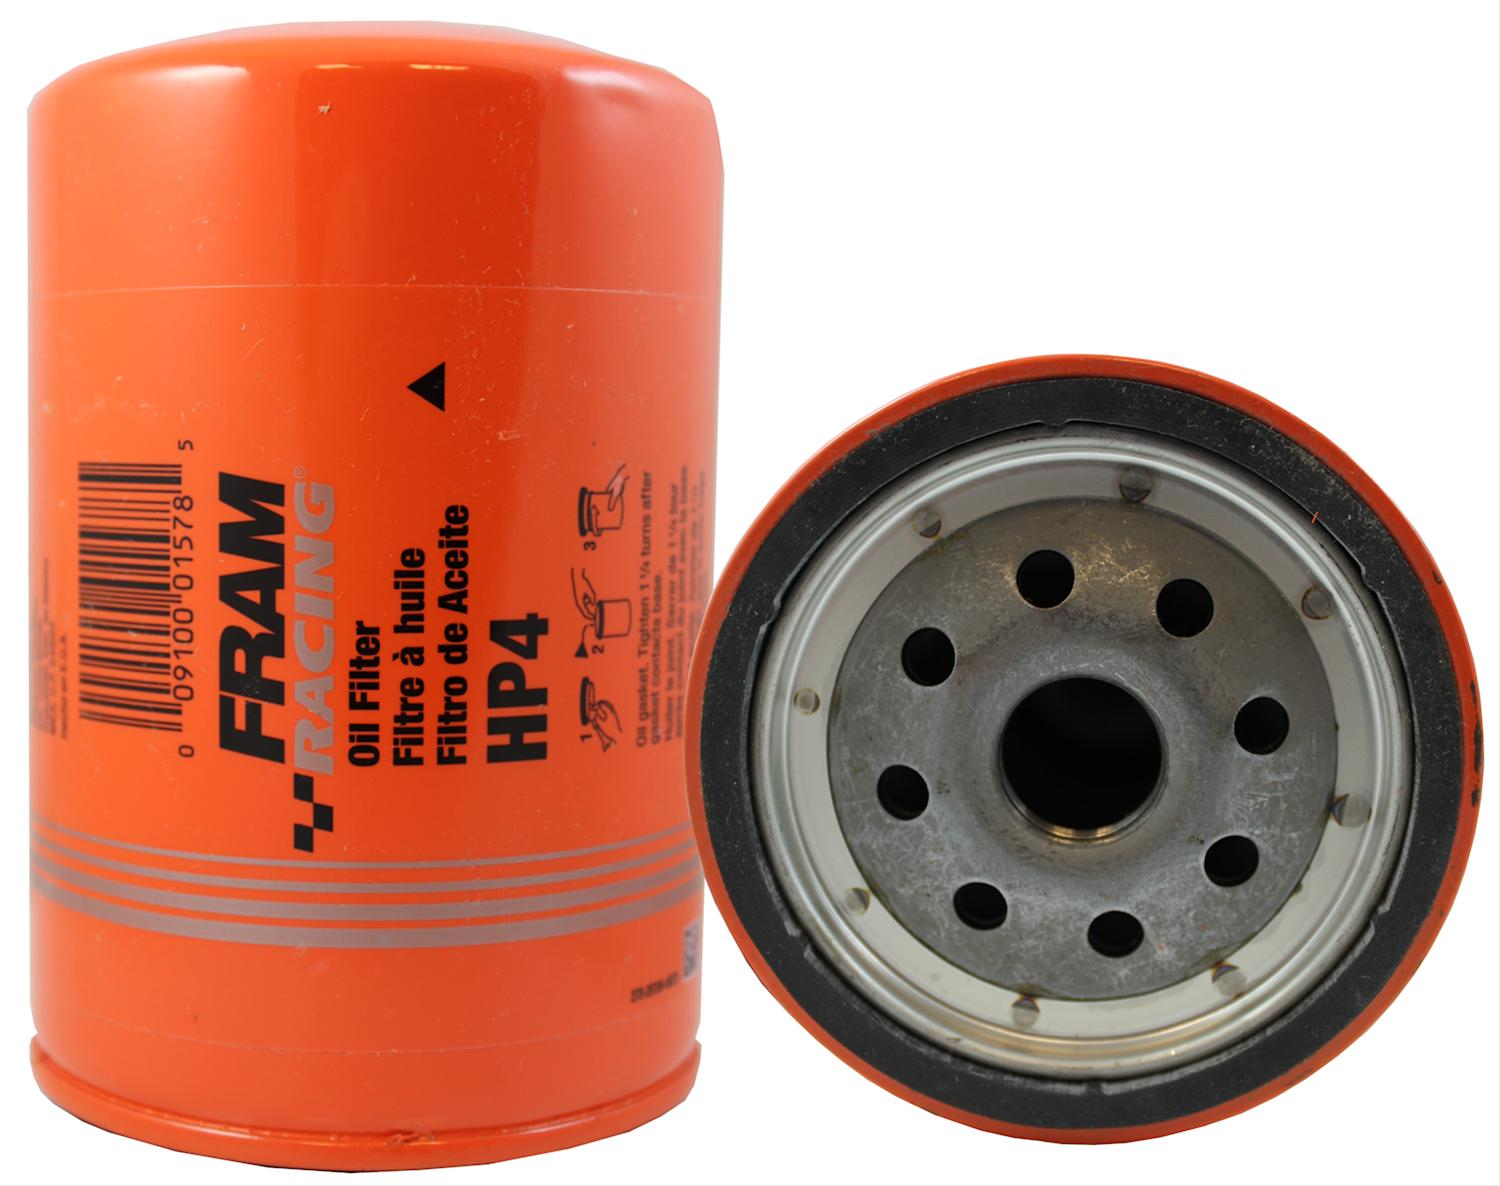 [SCHEMATICS_4FD]  Fram HP Series Oil Filters HP4 | Fram Fuel Filter Specs |  | Summit Racing